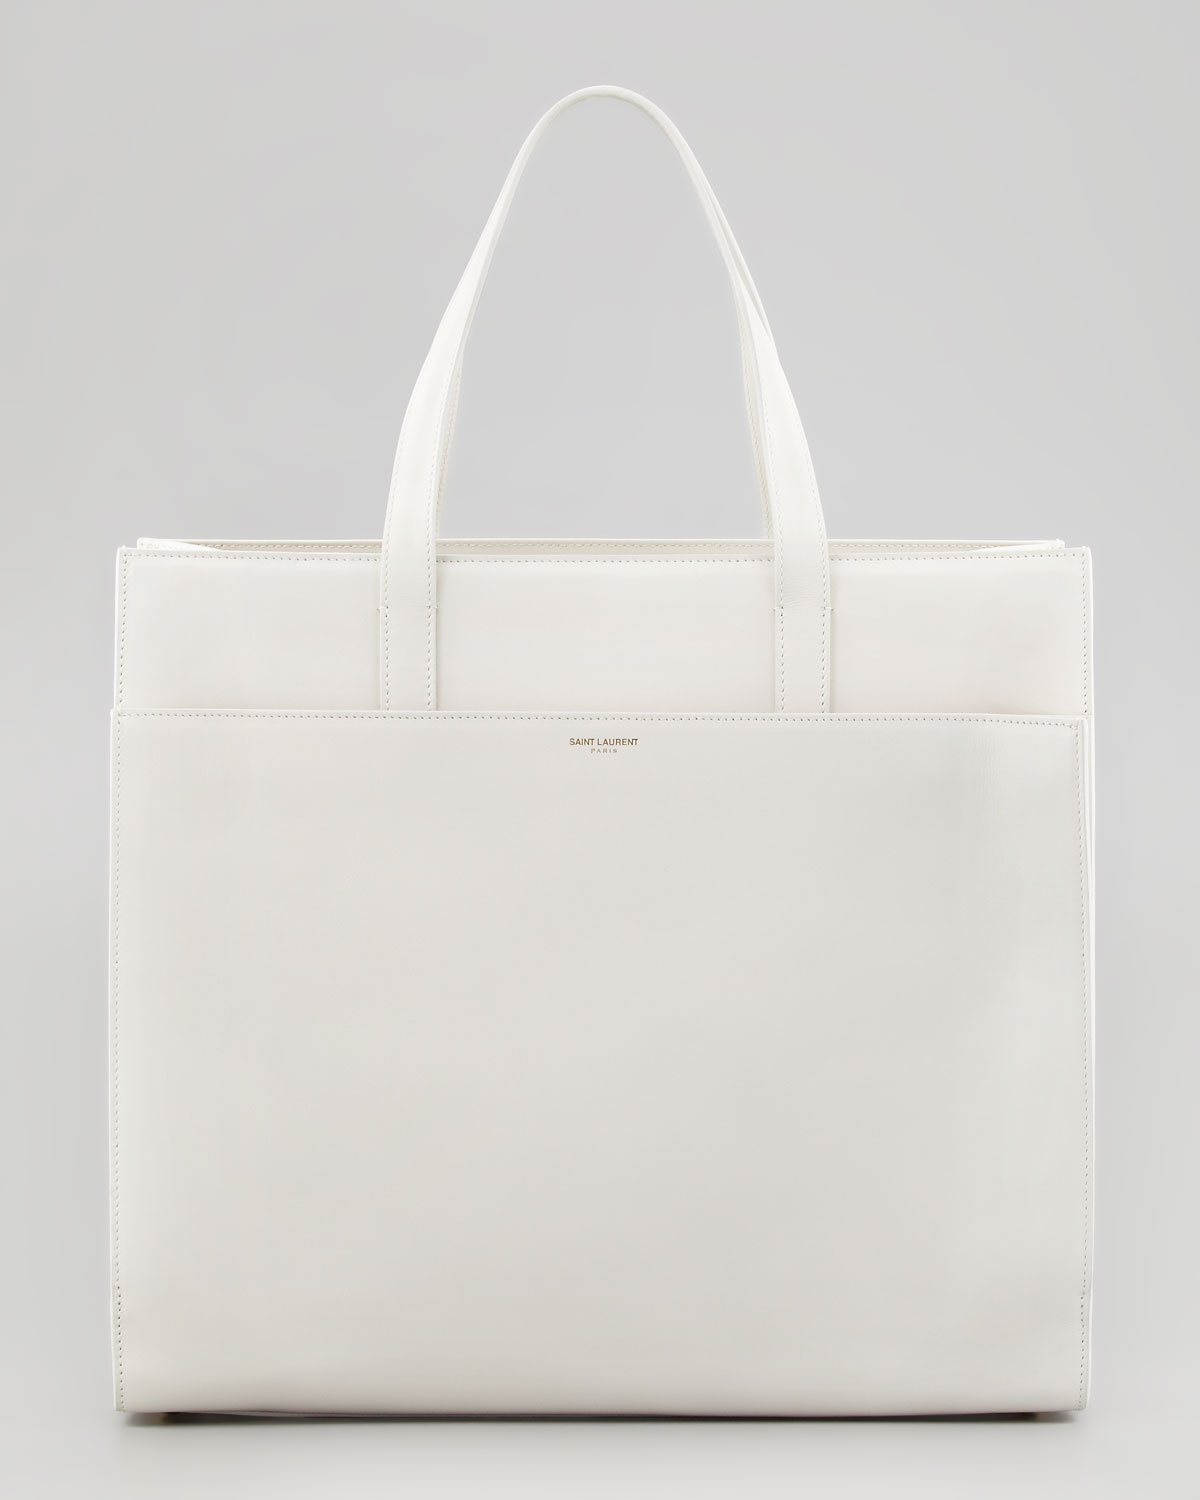 f5afe63d8a Saint Laurent White Flat Shopping Tote Bag